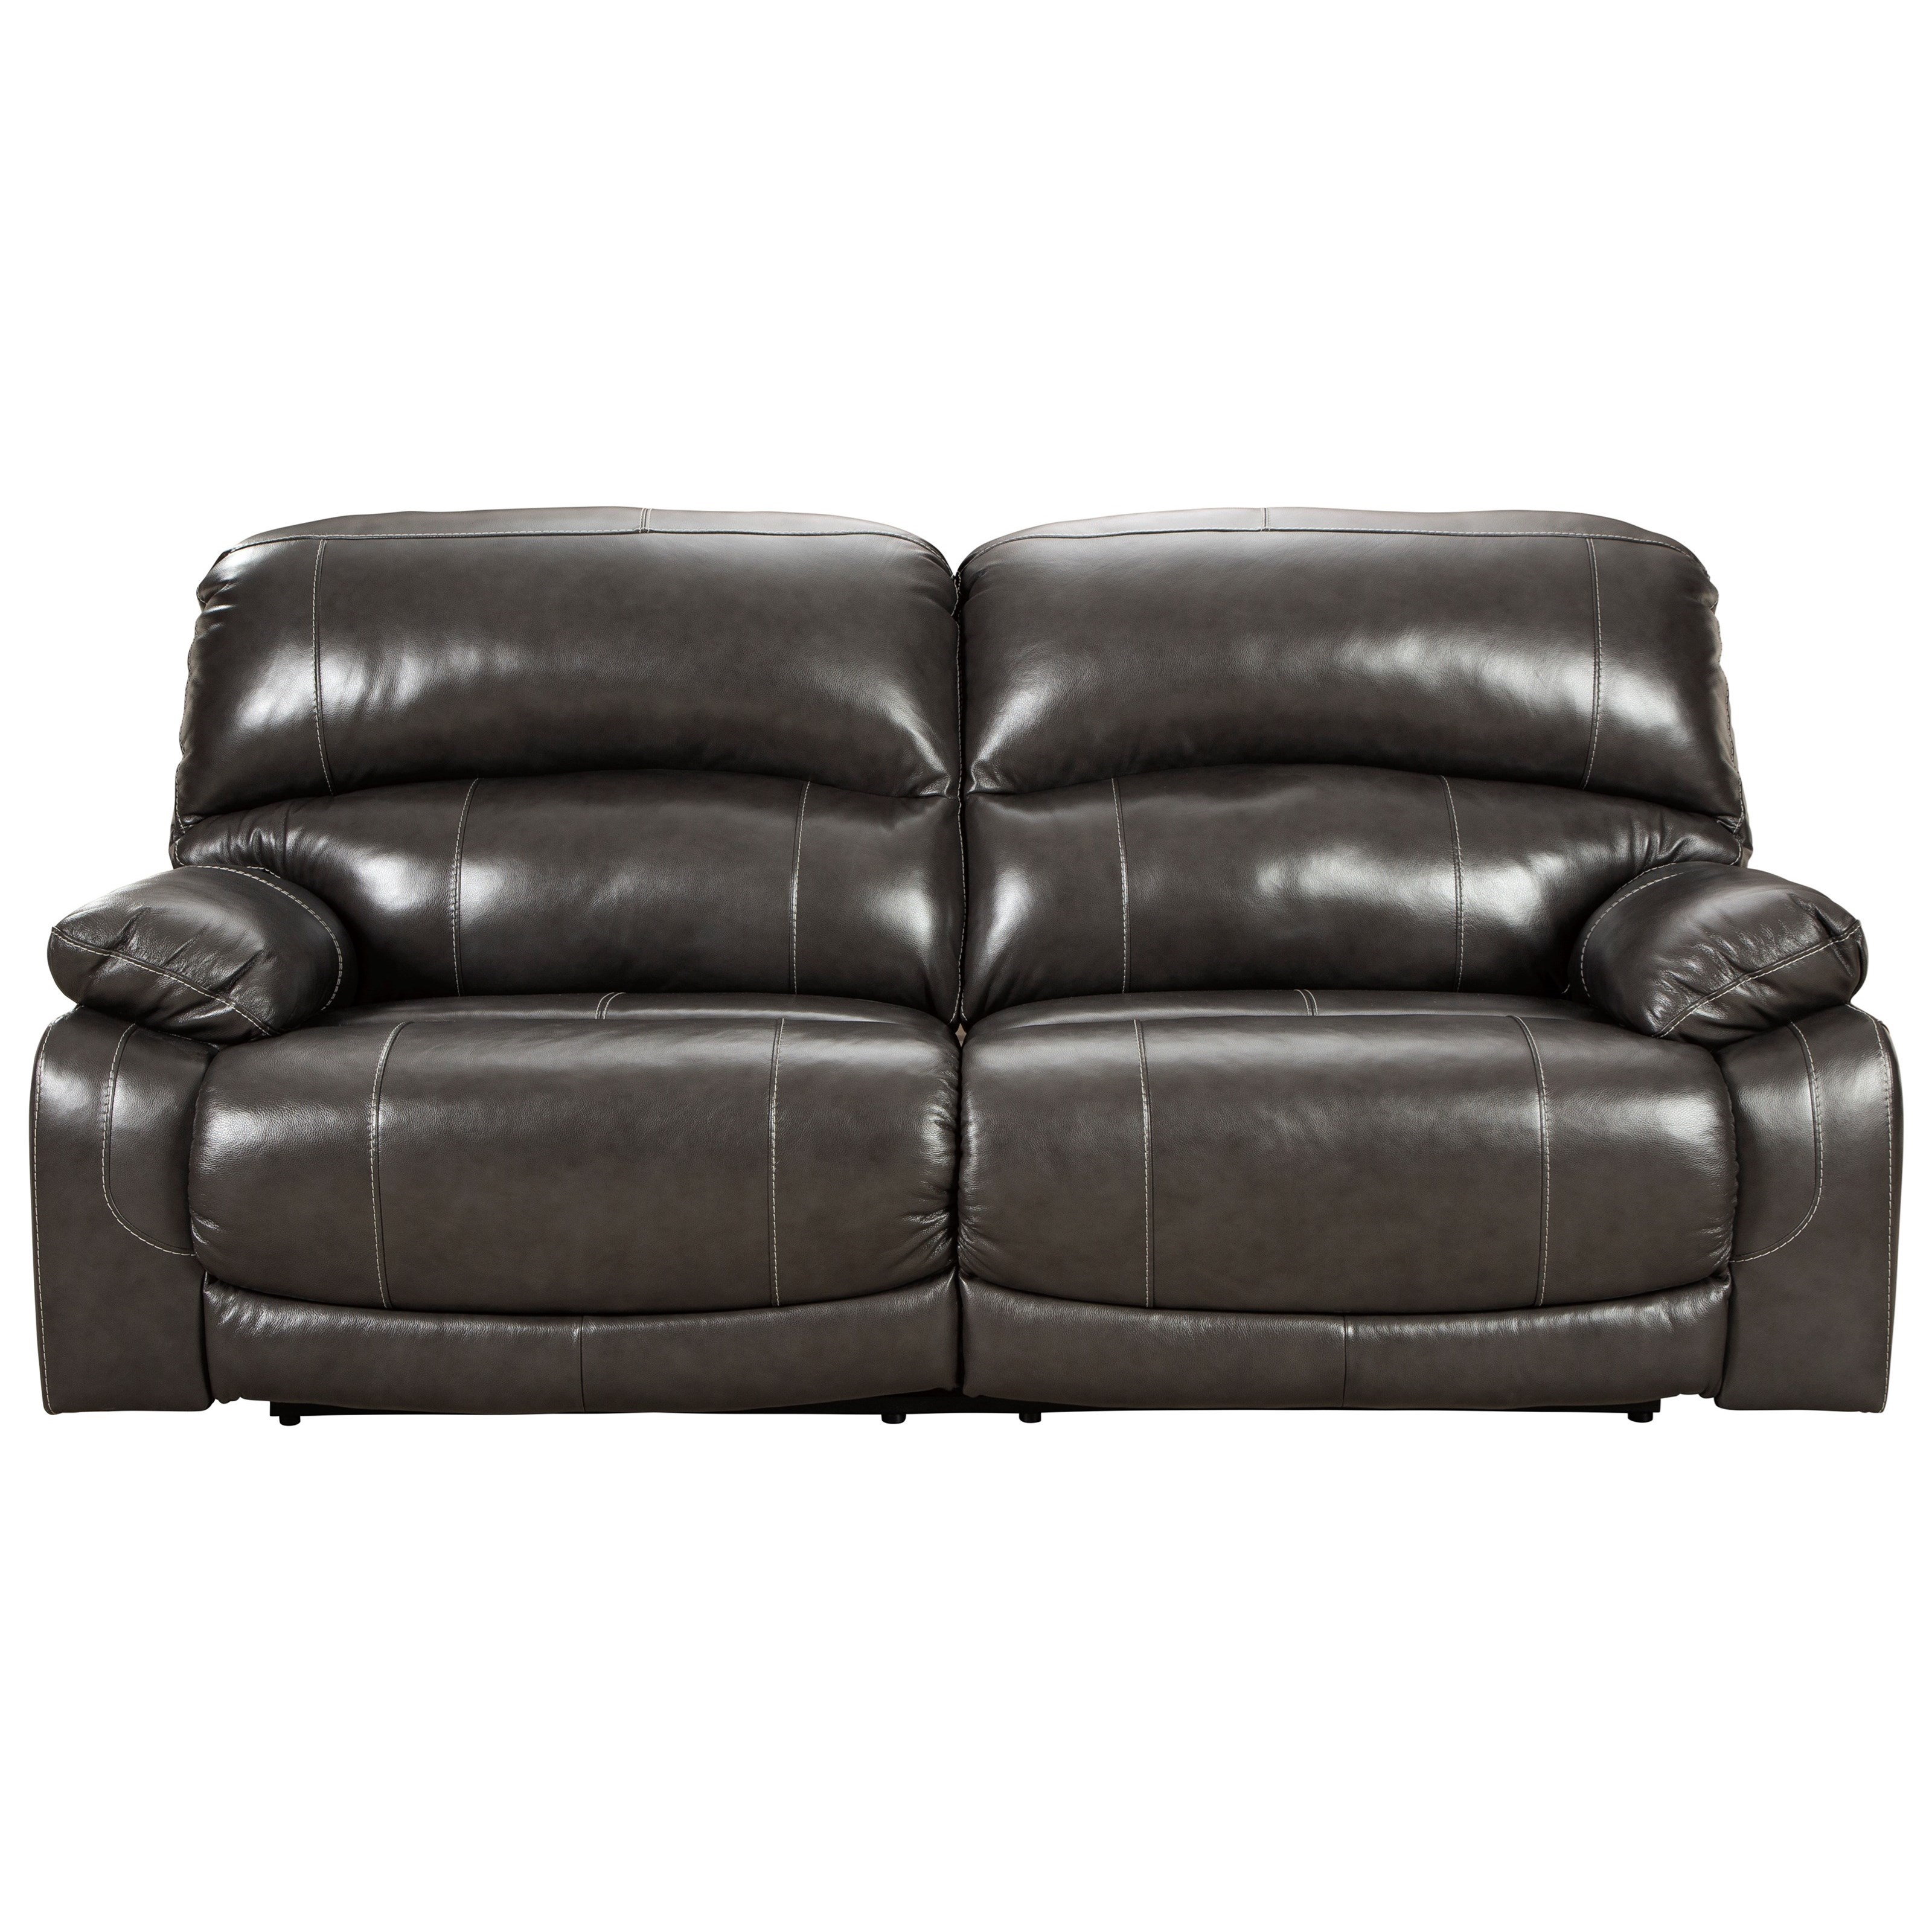 Hallstrung 2 Seat Reclining Power Sofa by Ashley (Signature Design) at Johnny Janosik